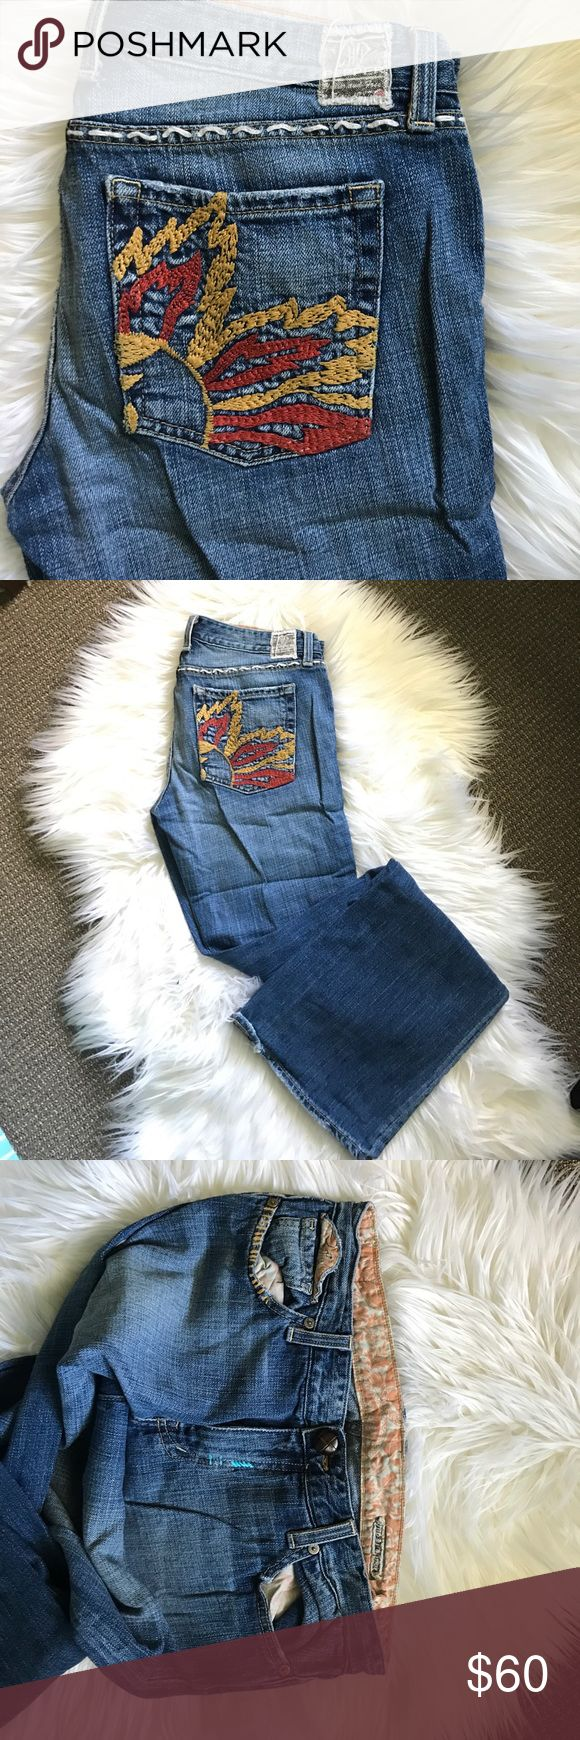 Rare Chip & Pepper Premium Denim Flare leg jeans Chip & Pepper - twin brothers who started there own denim company in LA way back  This style is amazing!!  Nearly 20 years old the style is called   Blazing Saddles and is so California beach boho - it's awesome!  Excellently preserved- the wash is beautiful- like you owned them forever : soft and supple.  Light blue wash with a cross-hatch outlook  Very cool & likely one of a kind by now! Embroidered detail as shown in pics Novelty button…